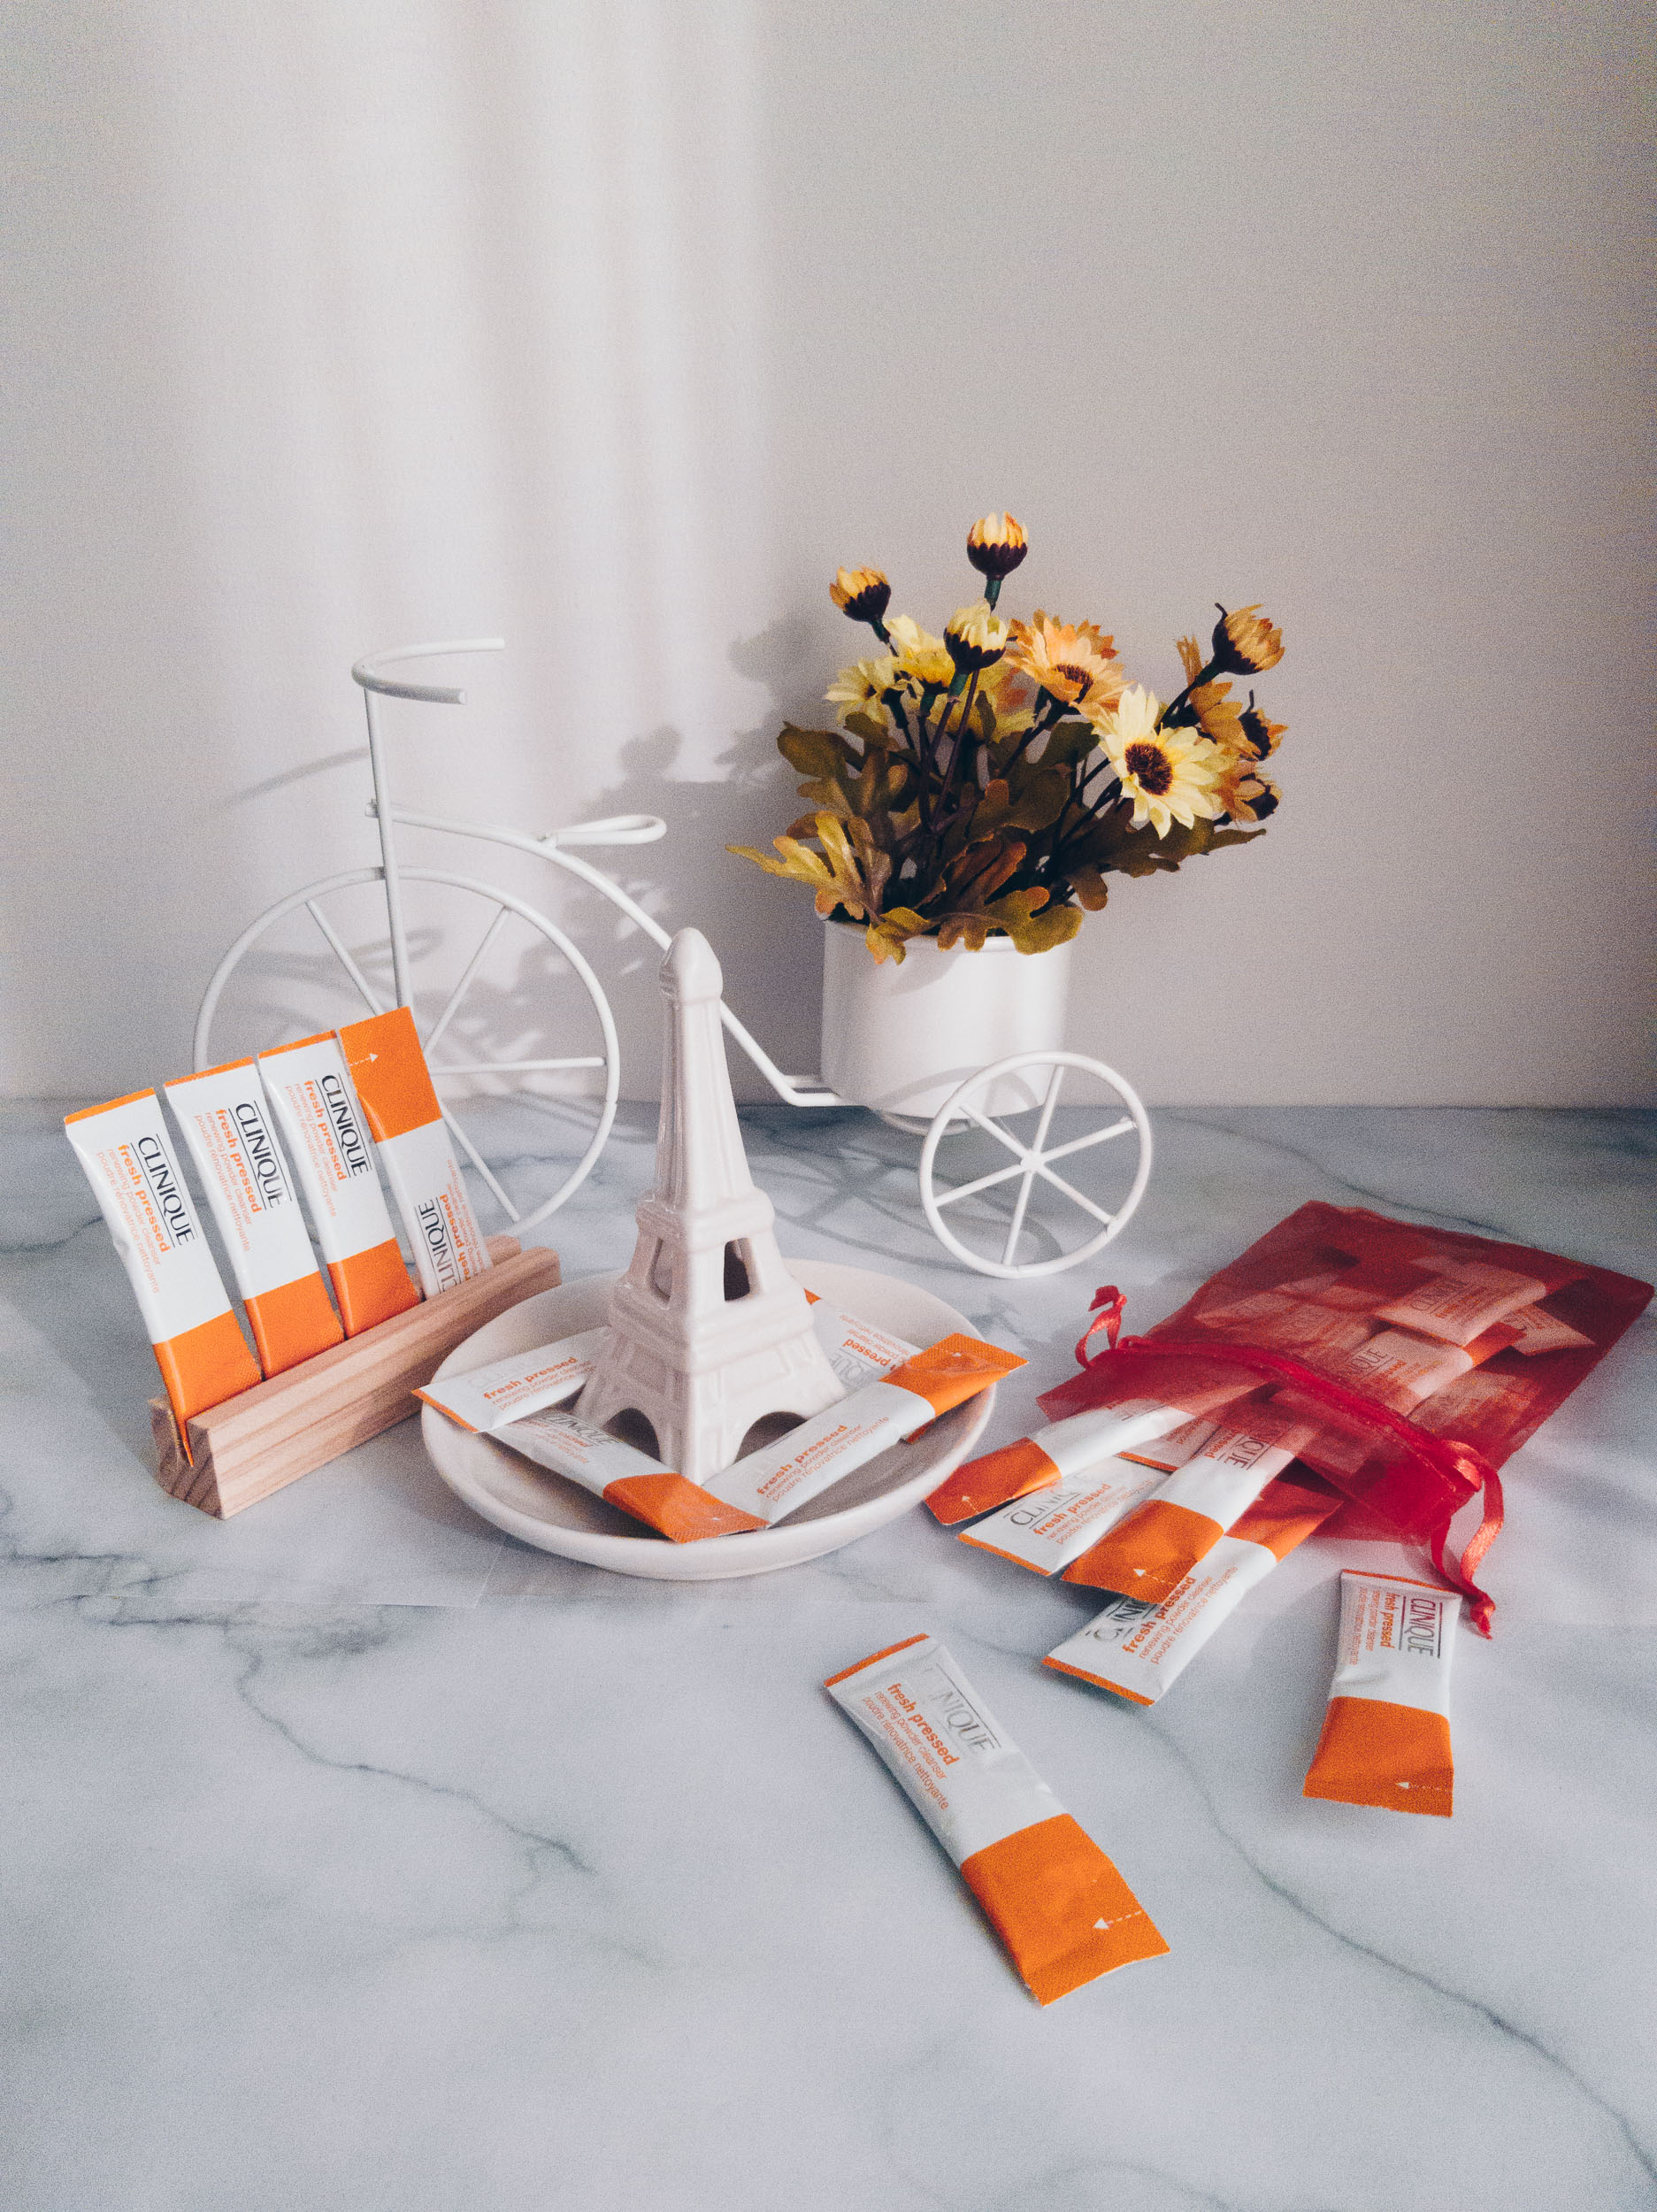 Clinique Fresh Pressed™ Renewing Powder Cleanser with Pure Vitamin C review with flatlay of sachets of the product in orange and white